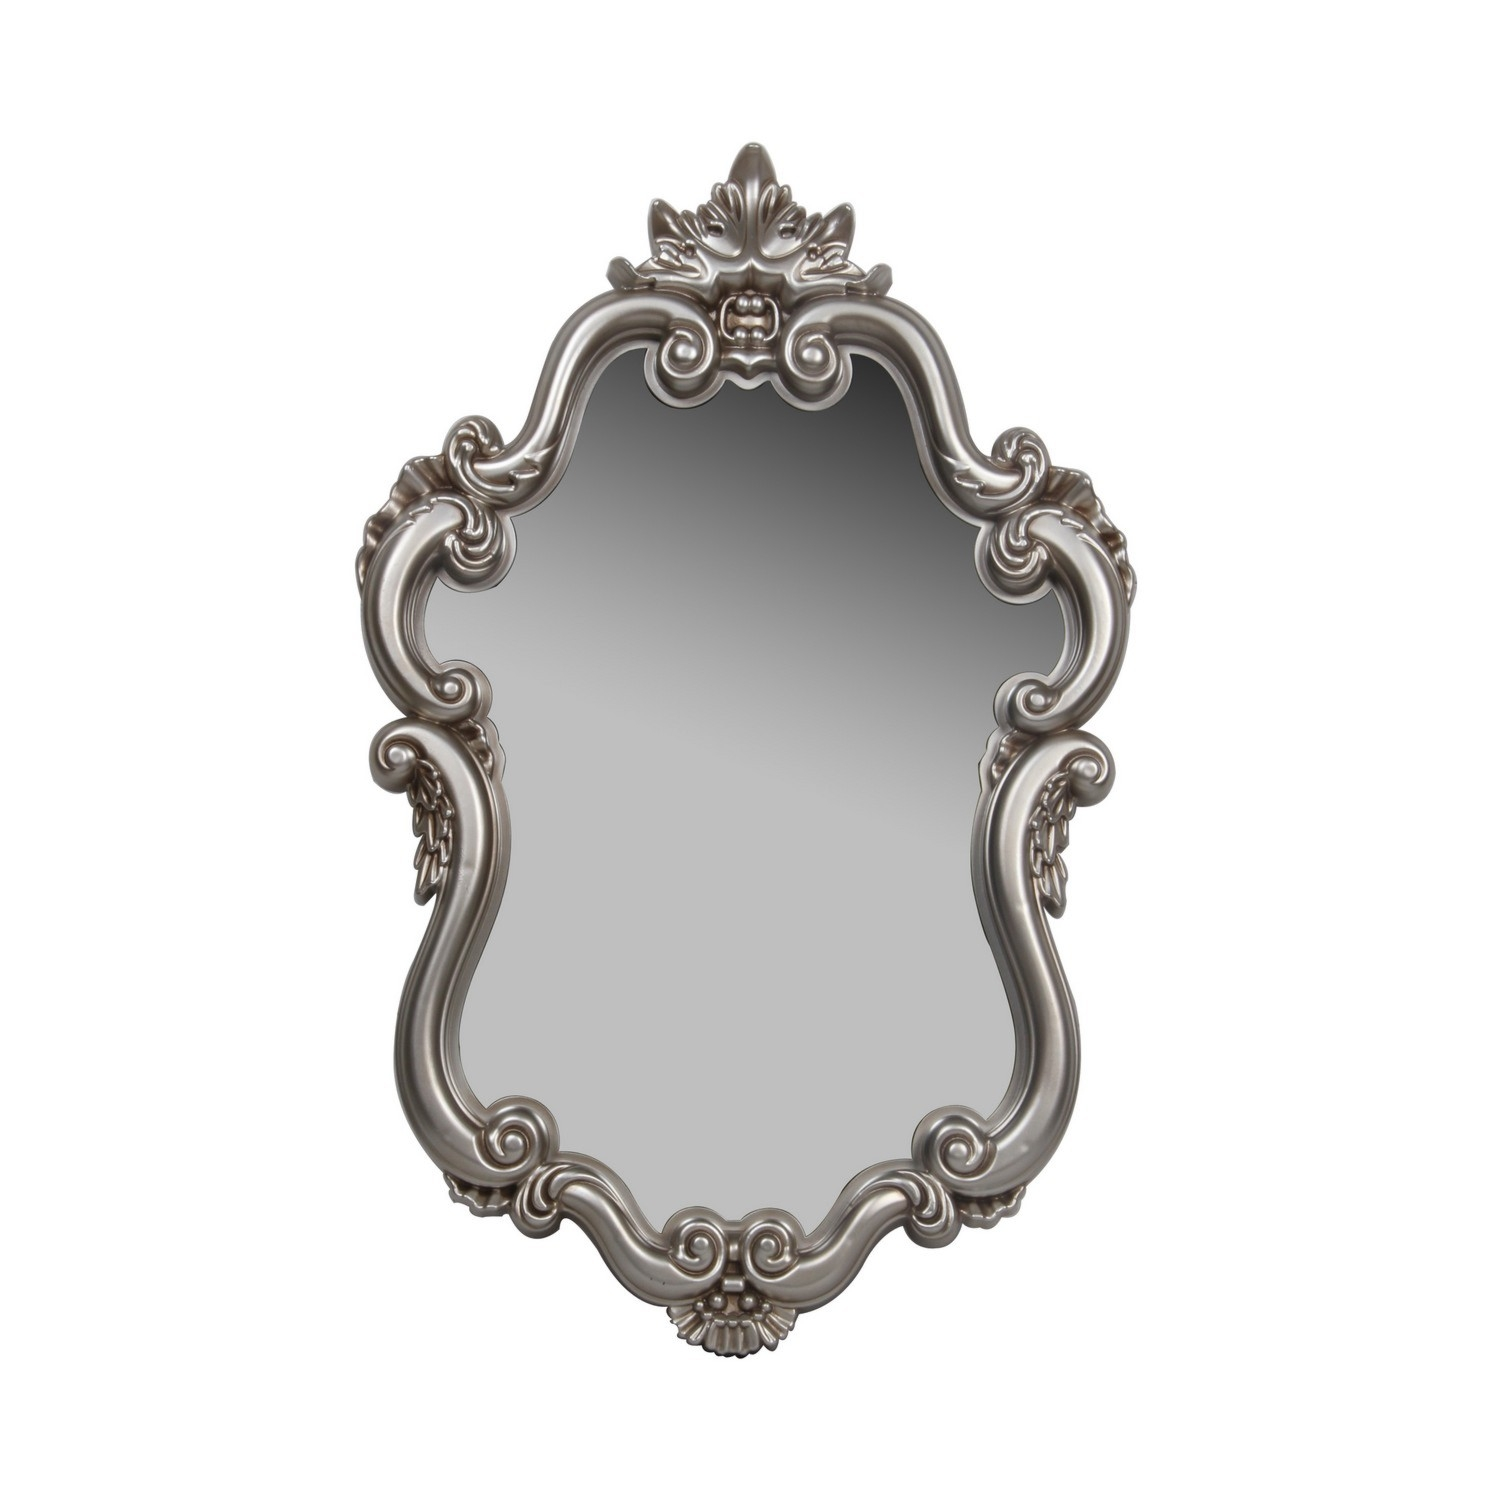 Champagne Baroque Mirror With Baroque Mirrors (Image 5 of 15)